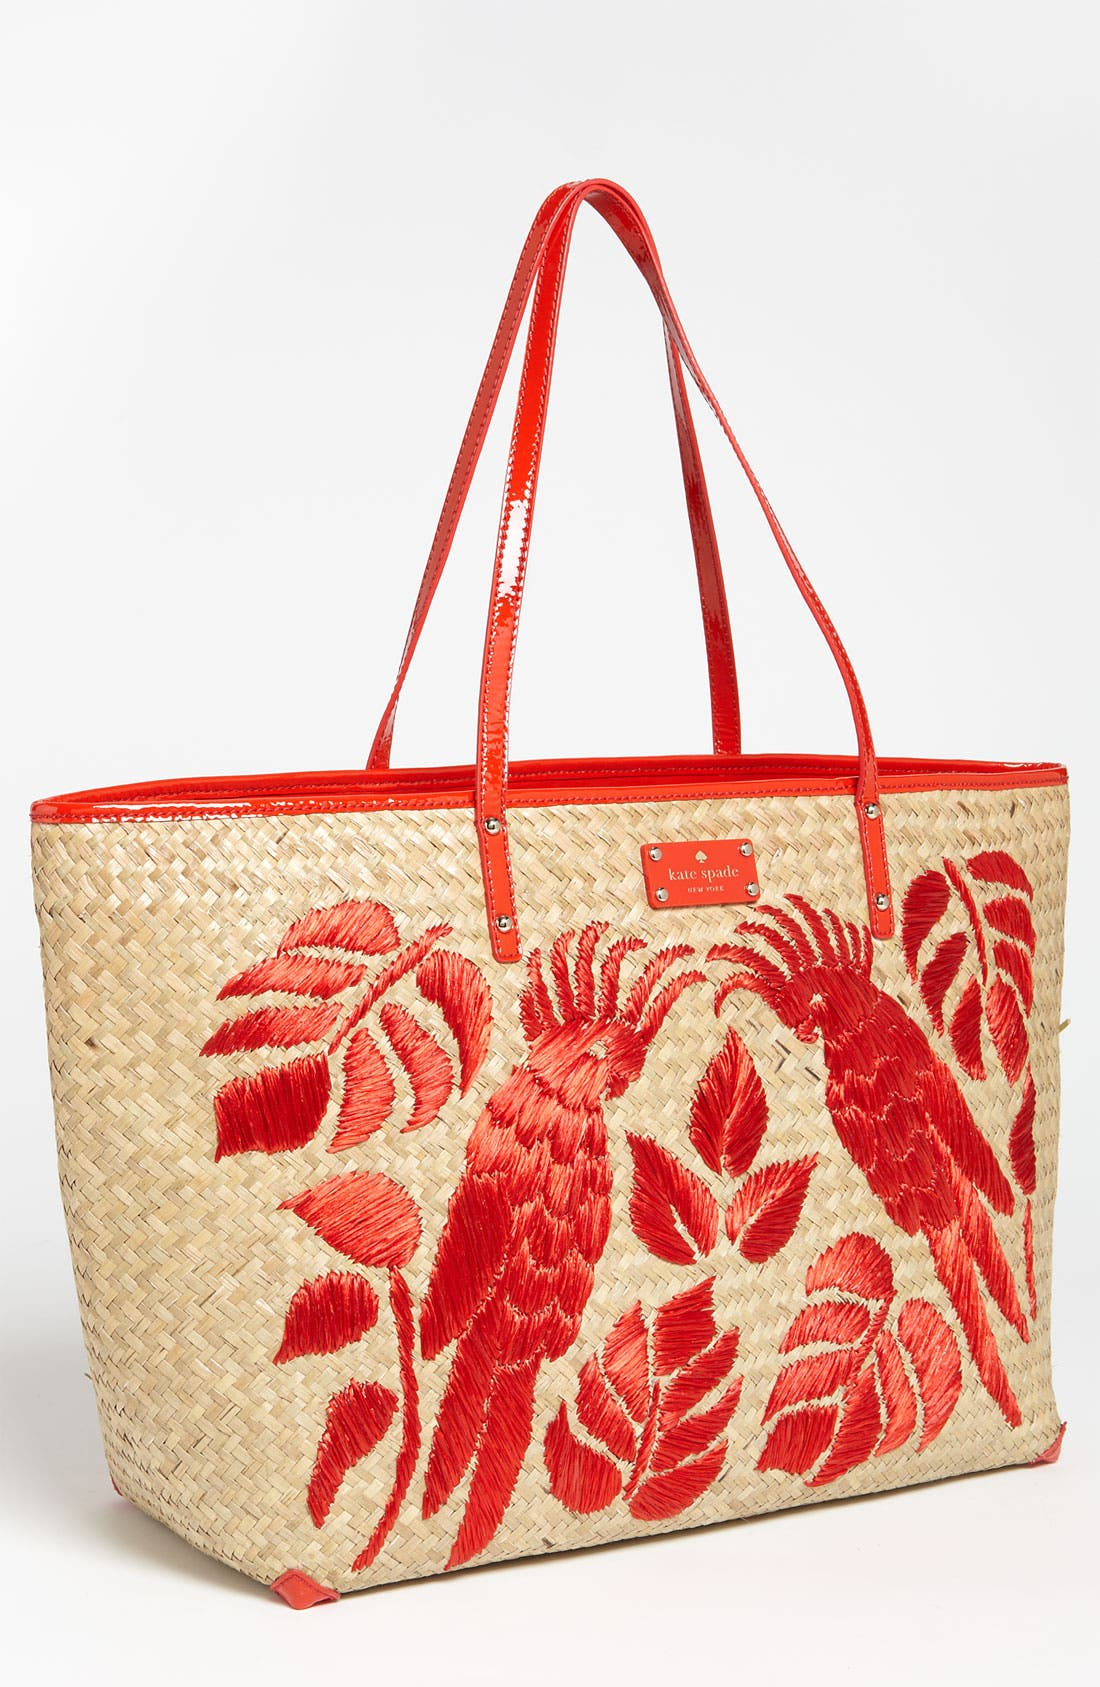 Main Image - kate spade new york 'harmony' embroidered straw tote